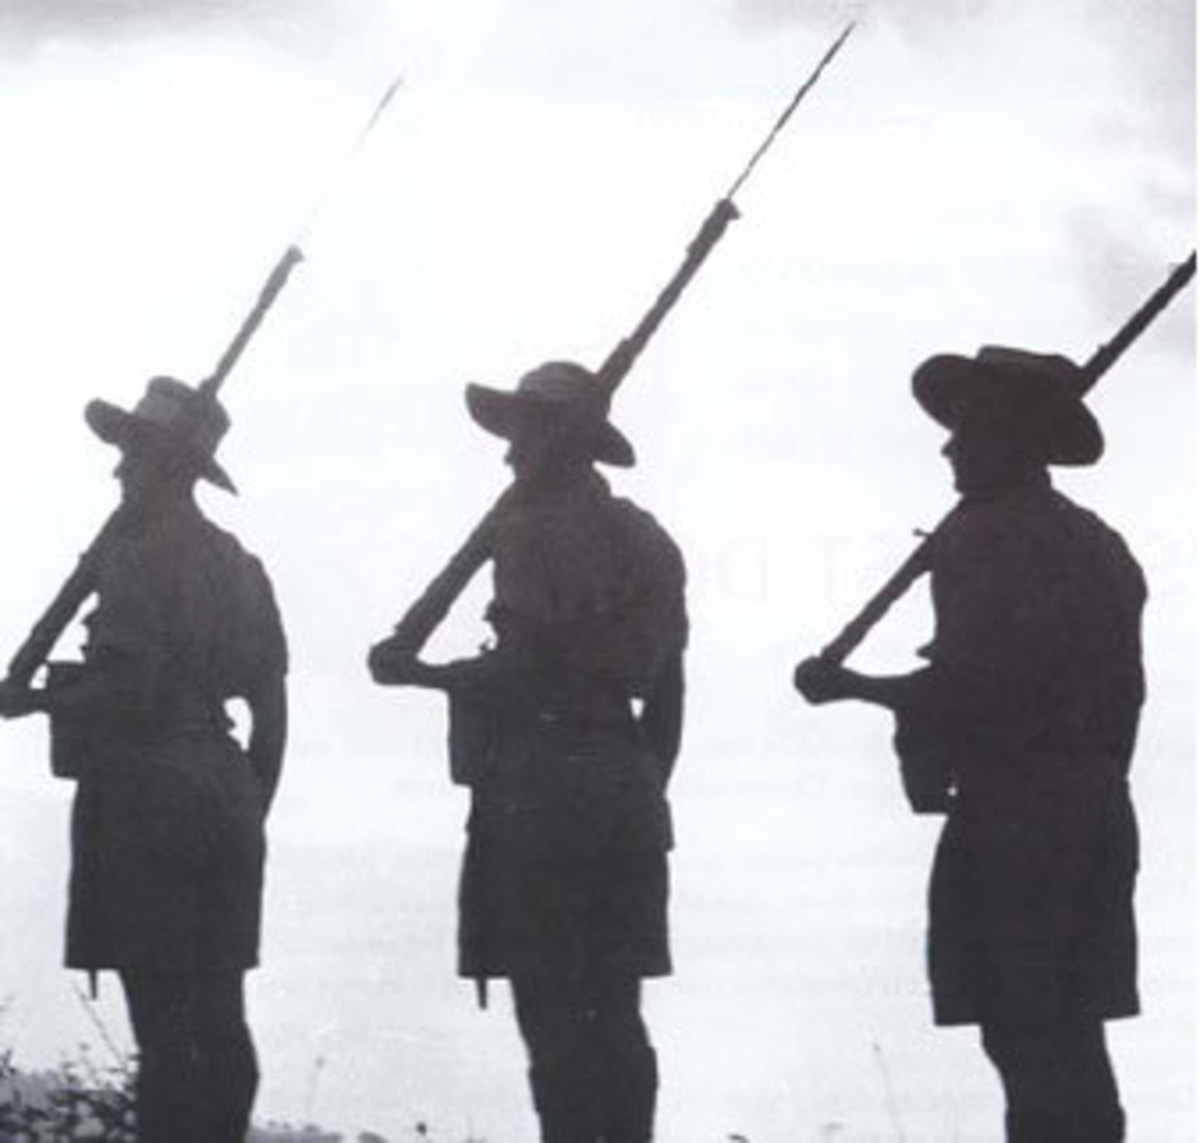 Australian soldiers silhouetted.